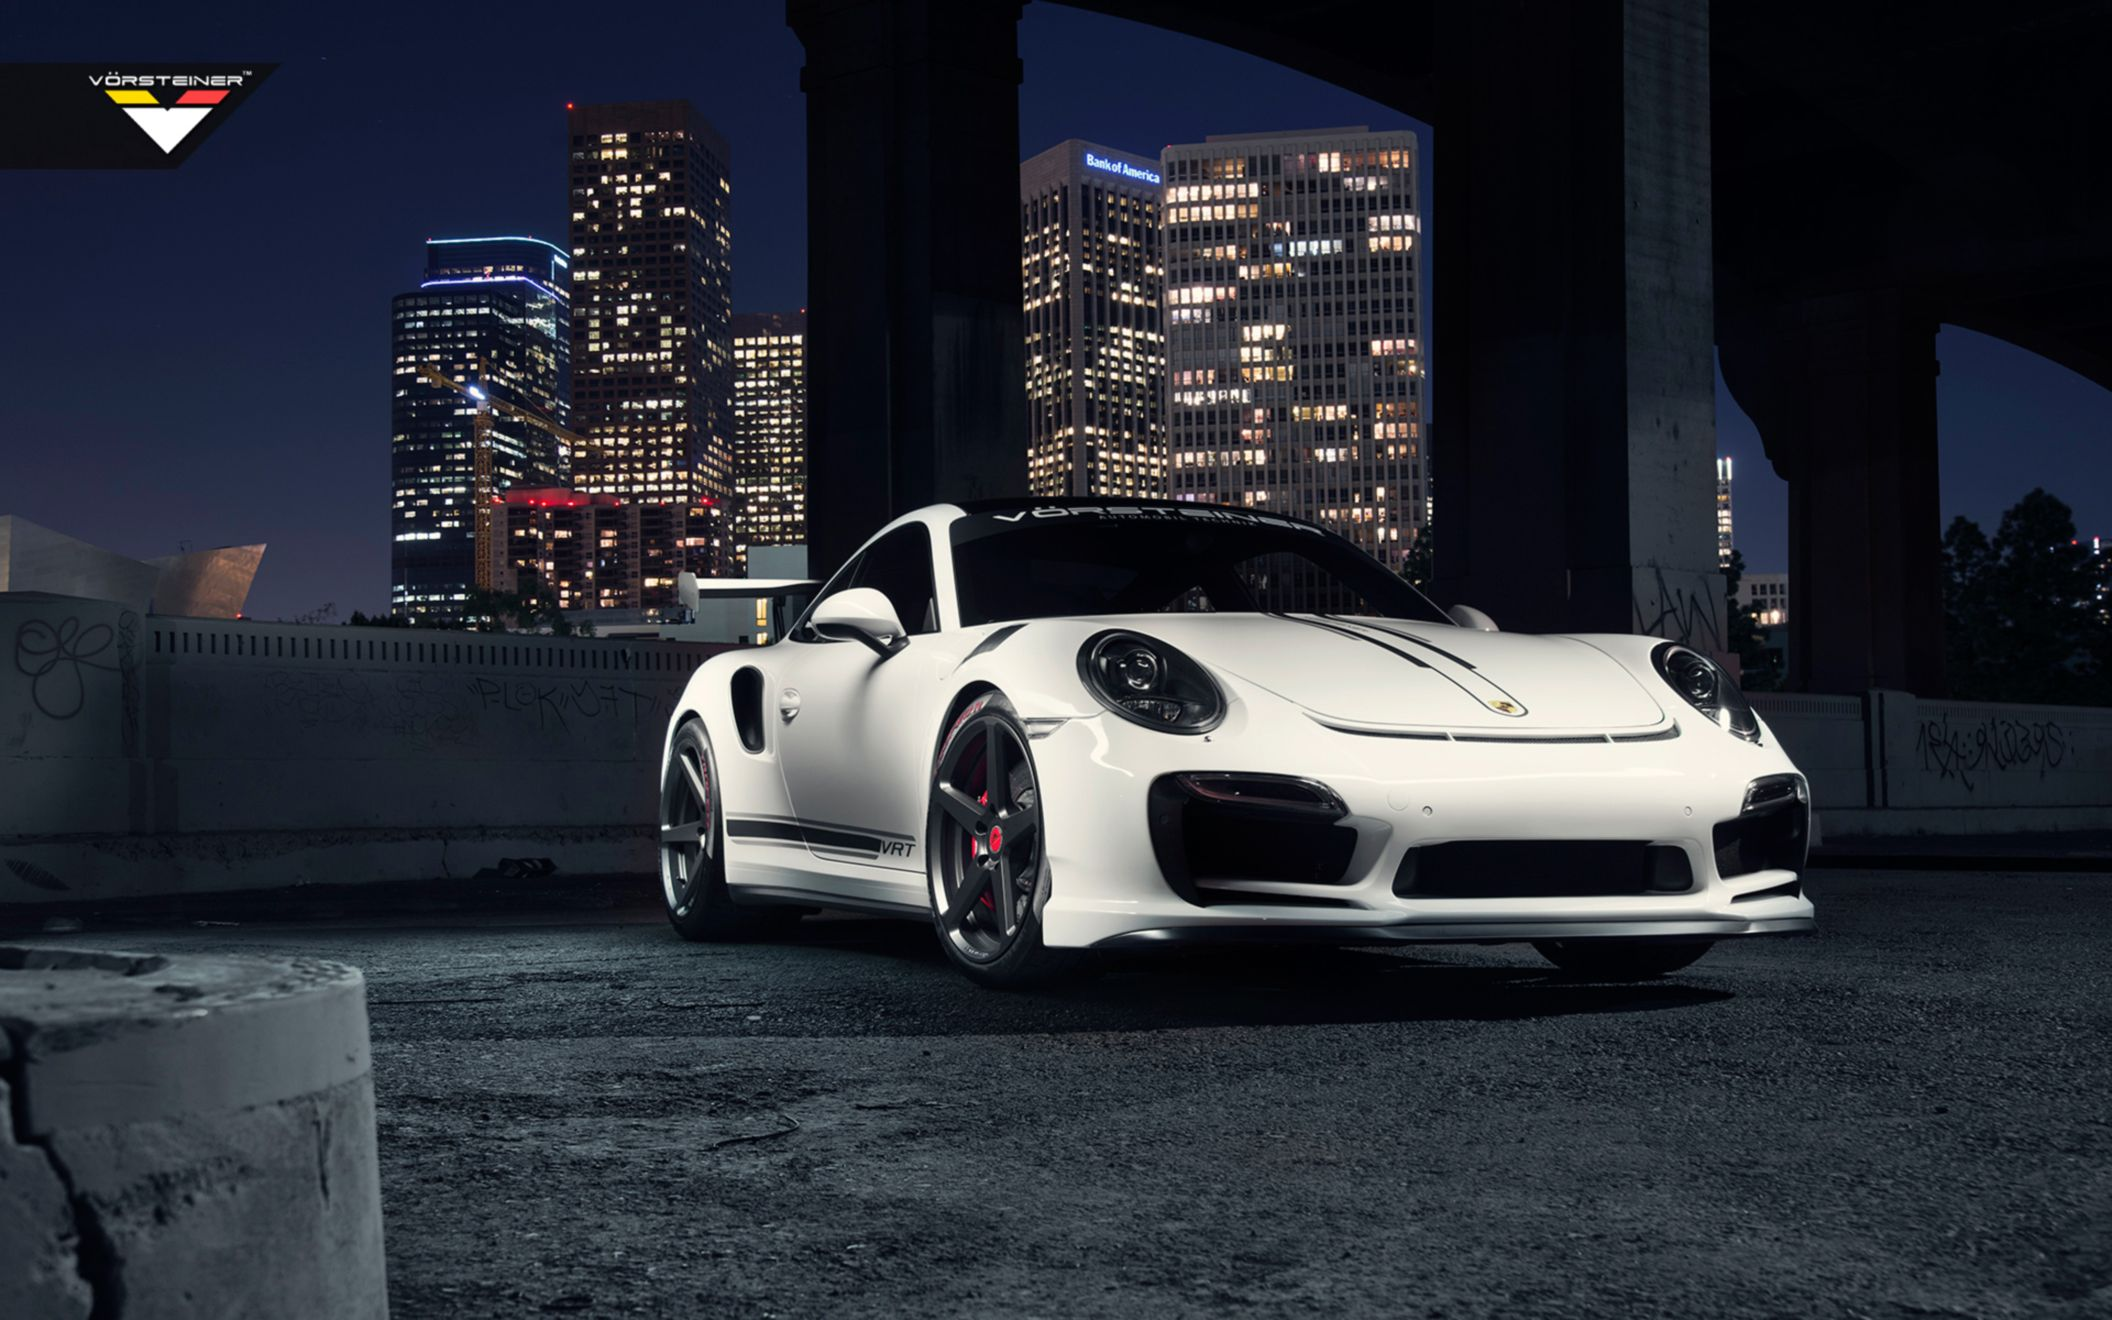 Download free HD Vorsteiner V RT Edition Porsche Turbo Wide Wallpaper, image